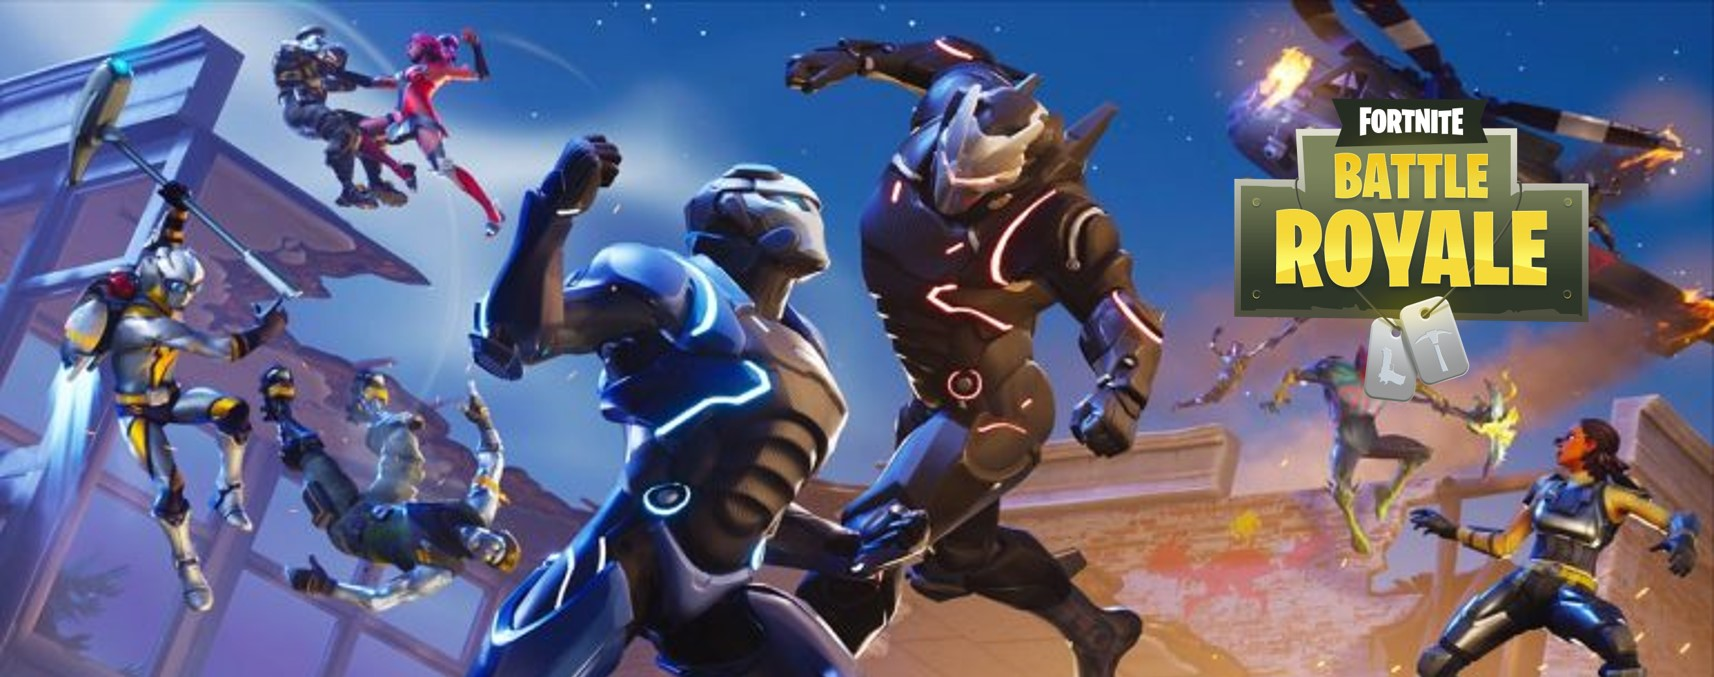 fortnite-blockbuster-woche-5-titel